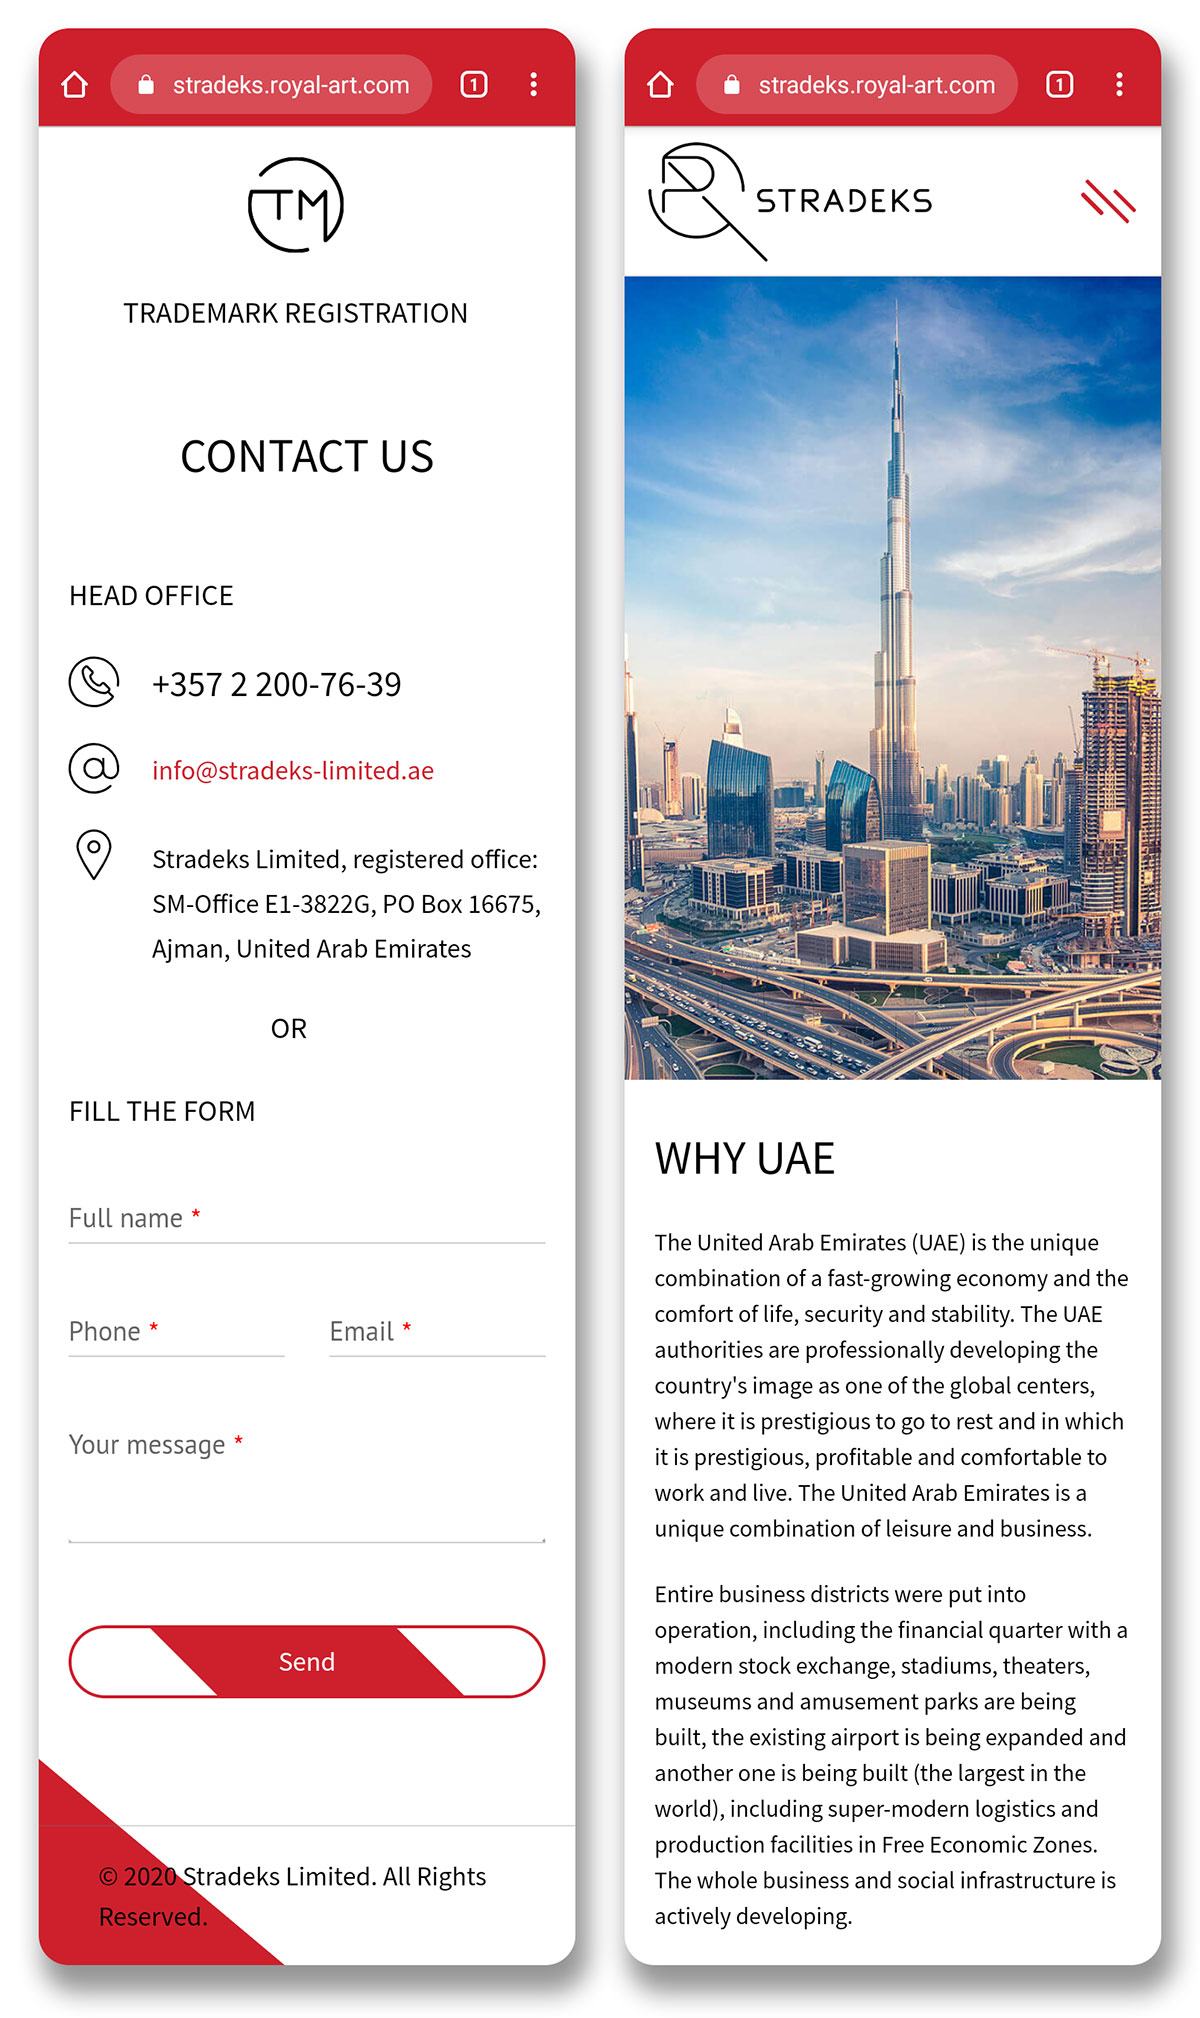 Trademark registration in the UAE (Stradeks). Website design for a company in the United Arab Emirates.